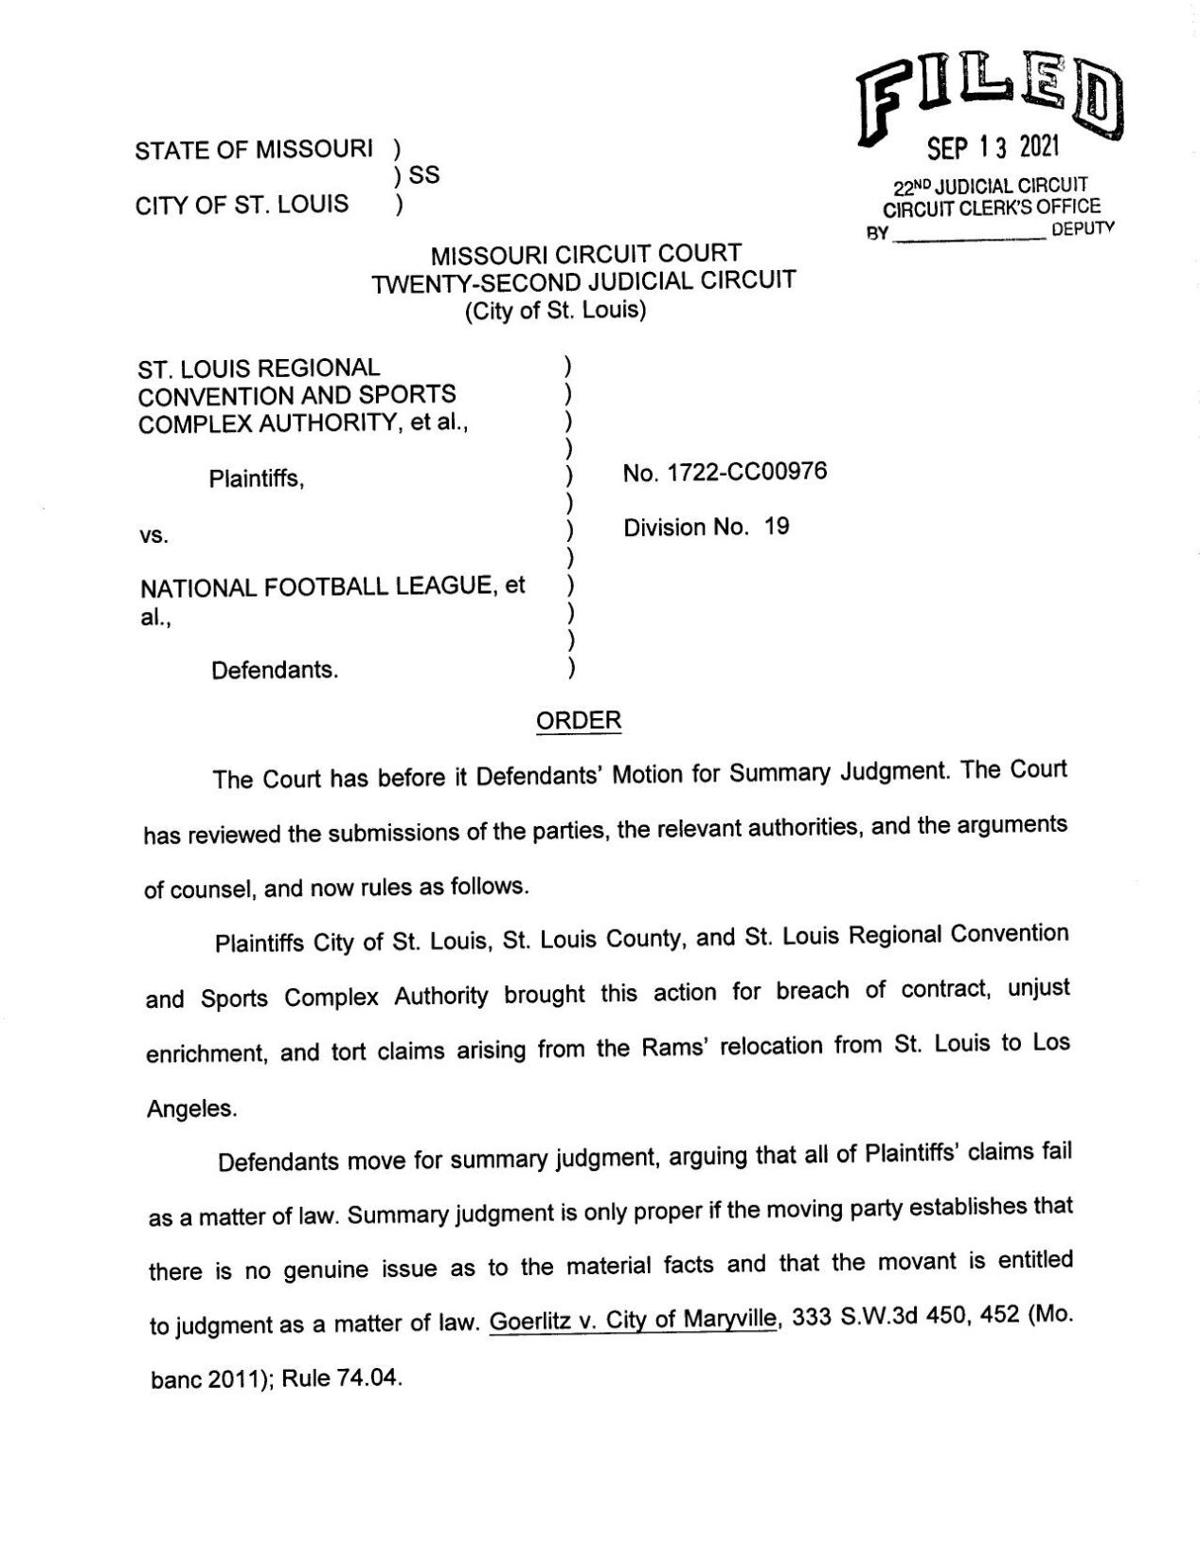 Judge denies motion for summary judgment in suit against Rams, NFL and Kroenke